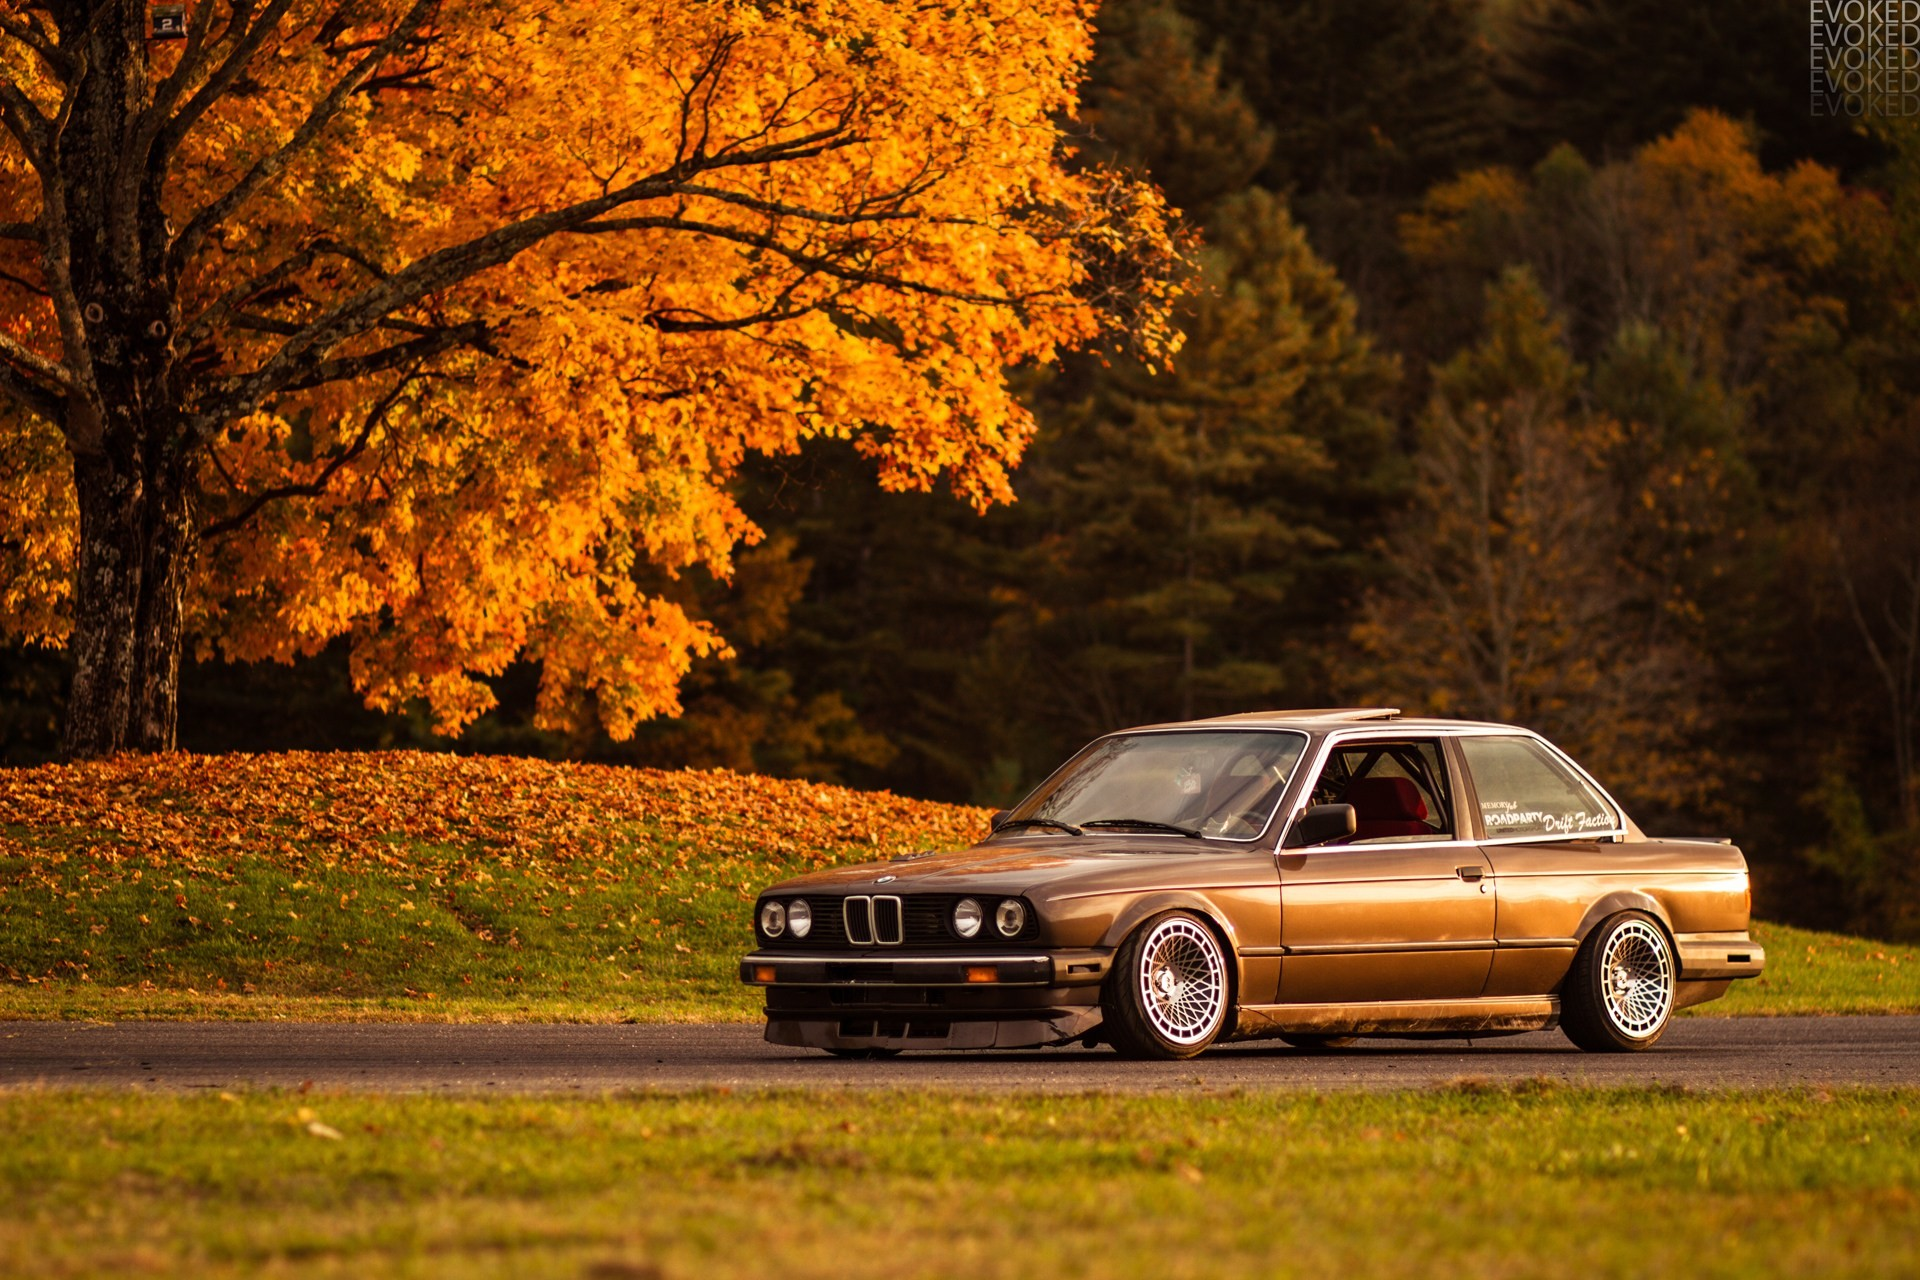 1920x1280 Free-bmw-e30-wallpaper